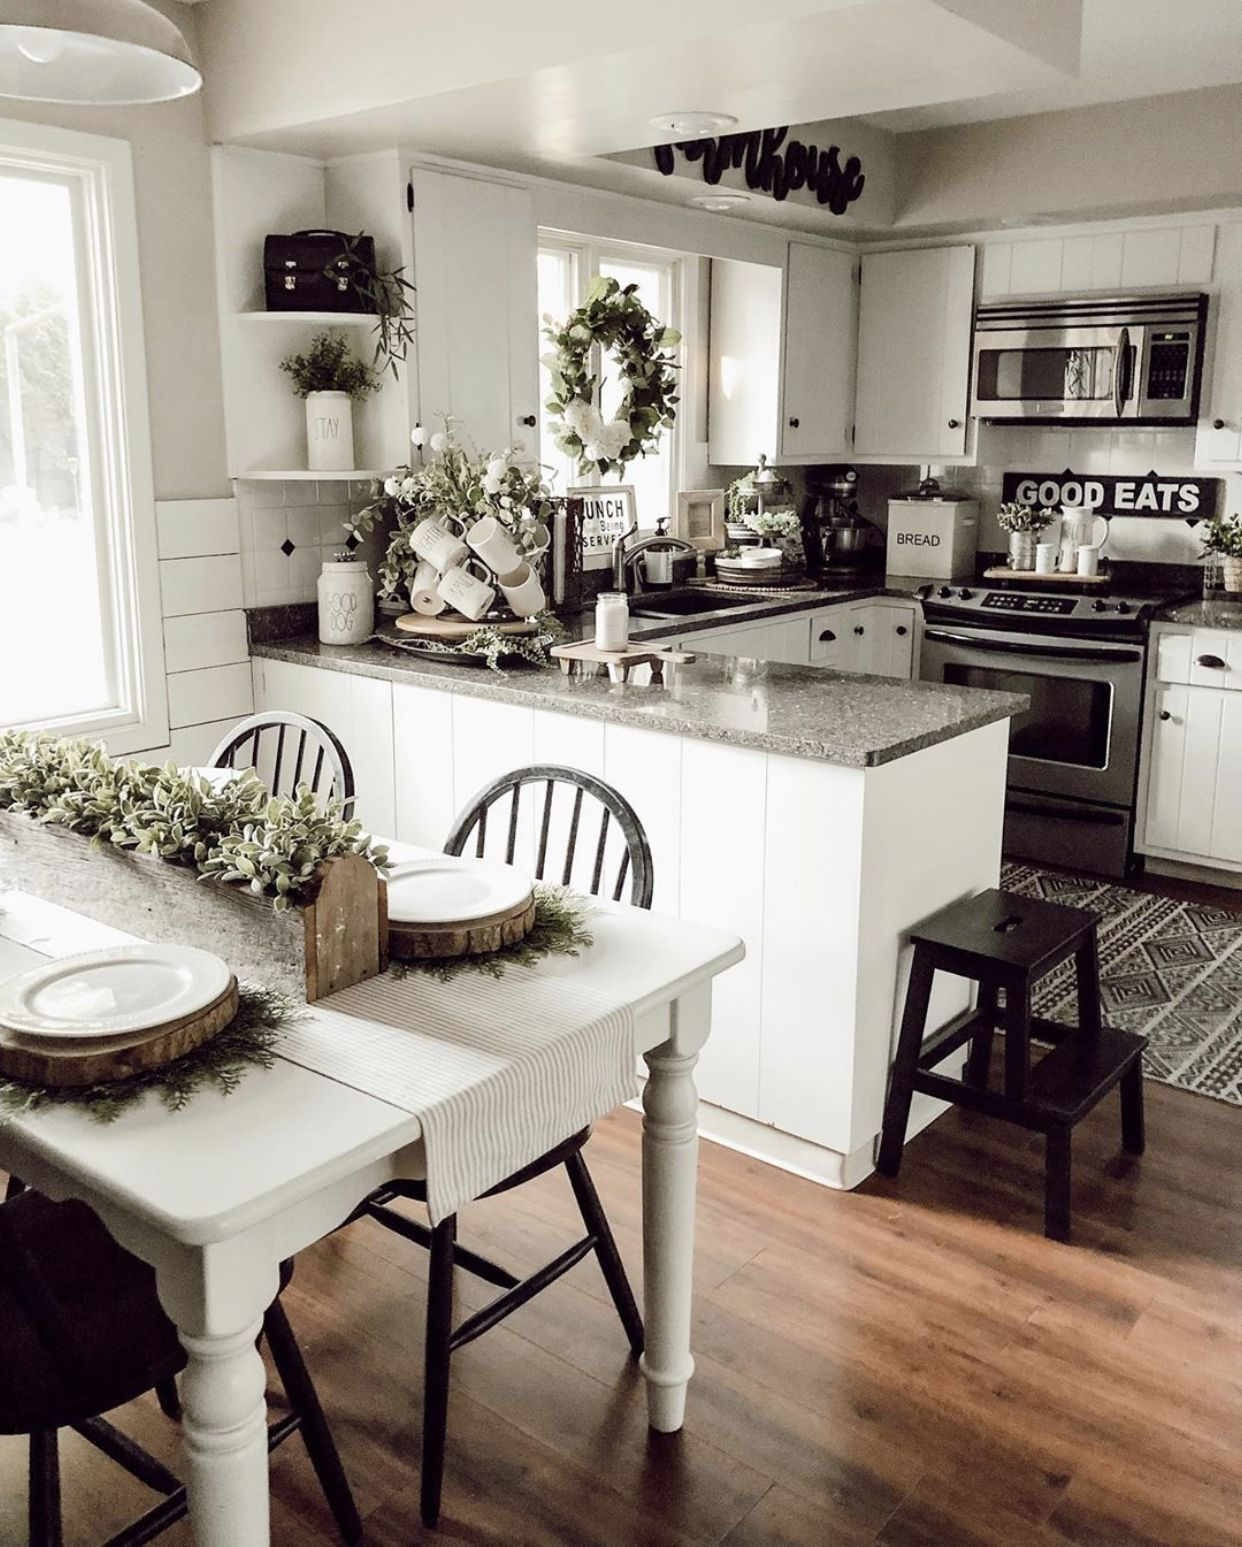 Pin by Candi Conlan on HOUSE   Mobile home kitchen cabinets ...